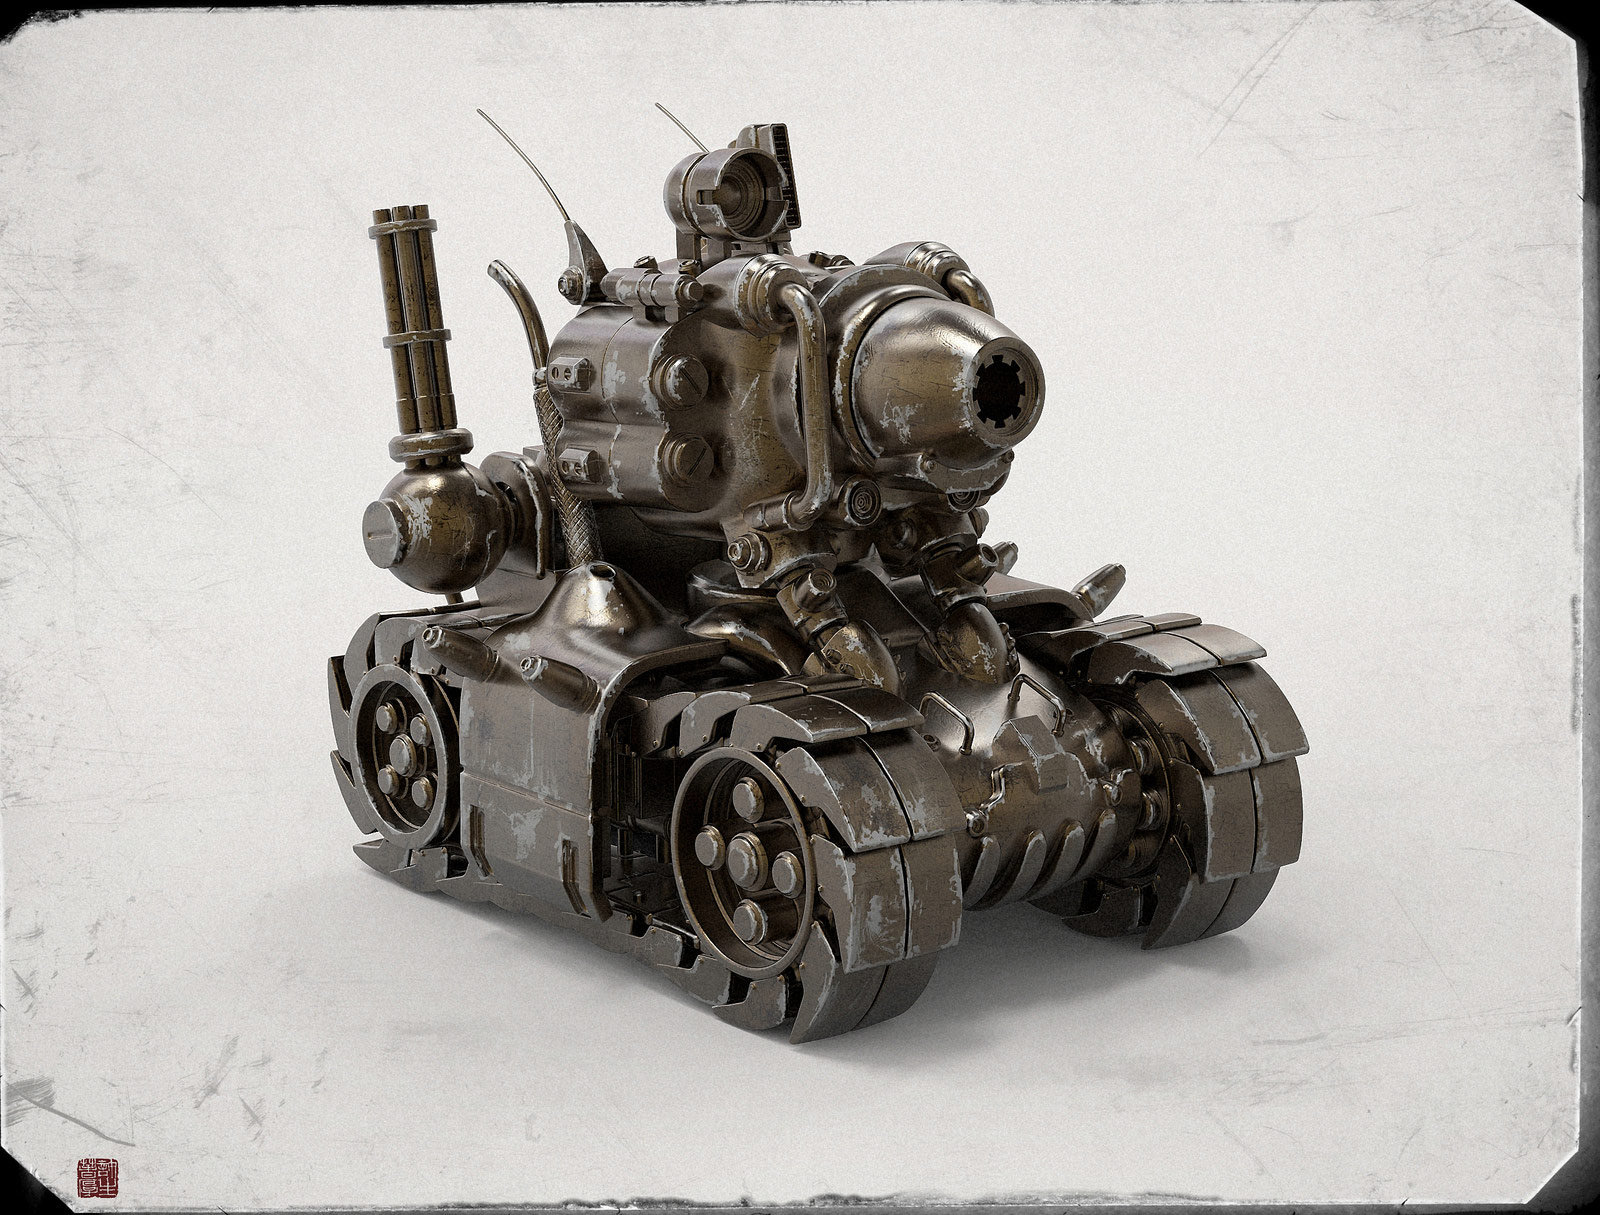 Zhelong xu metal slug 1